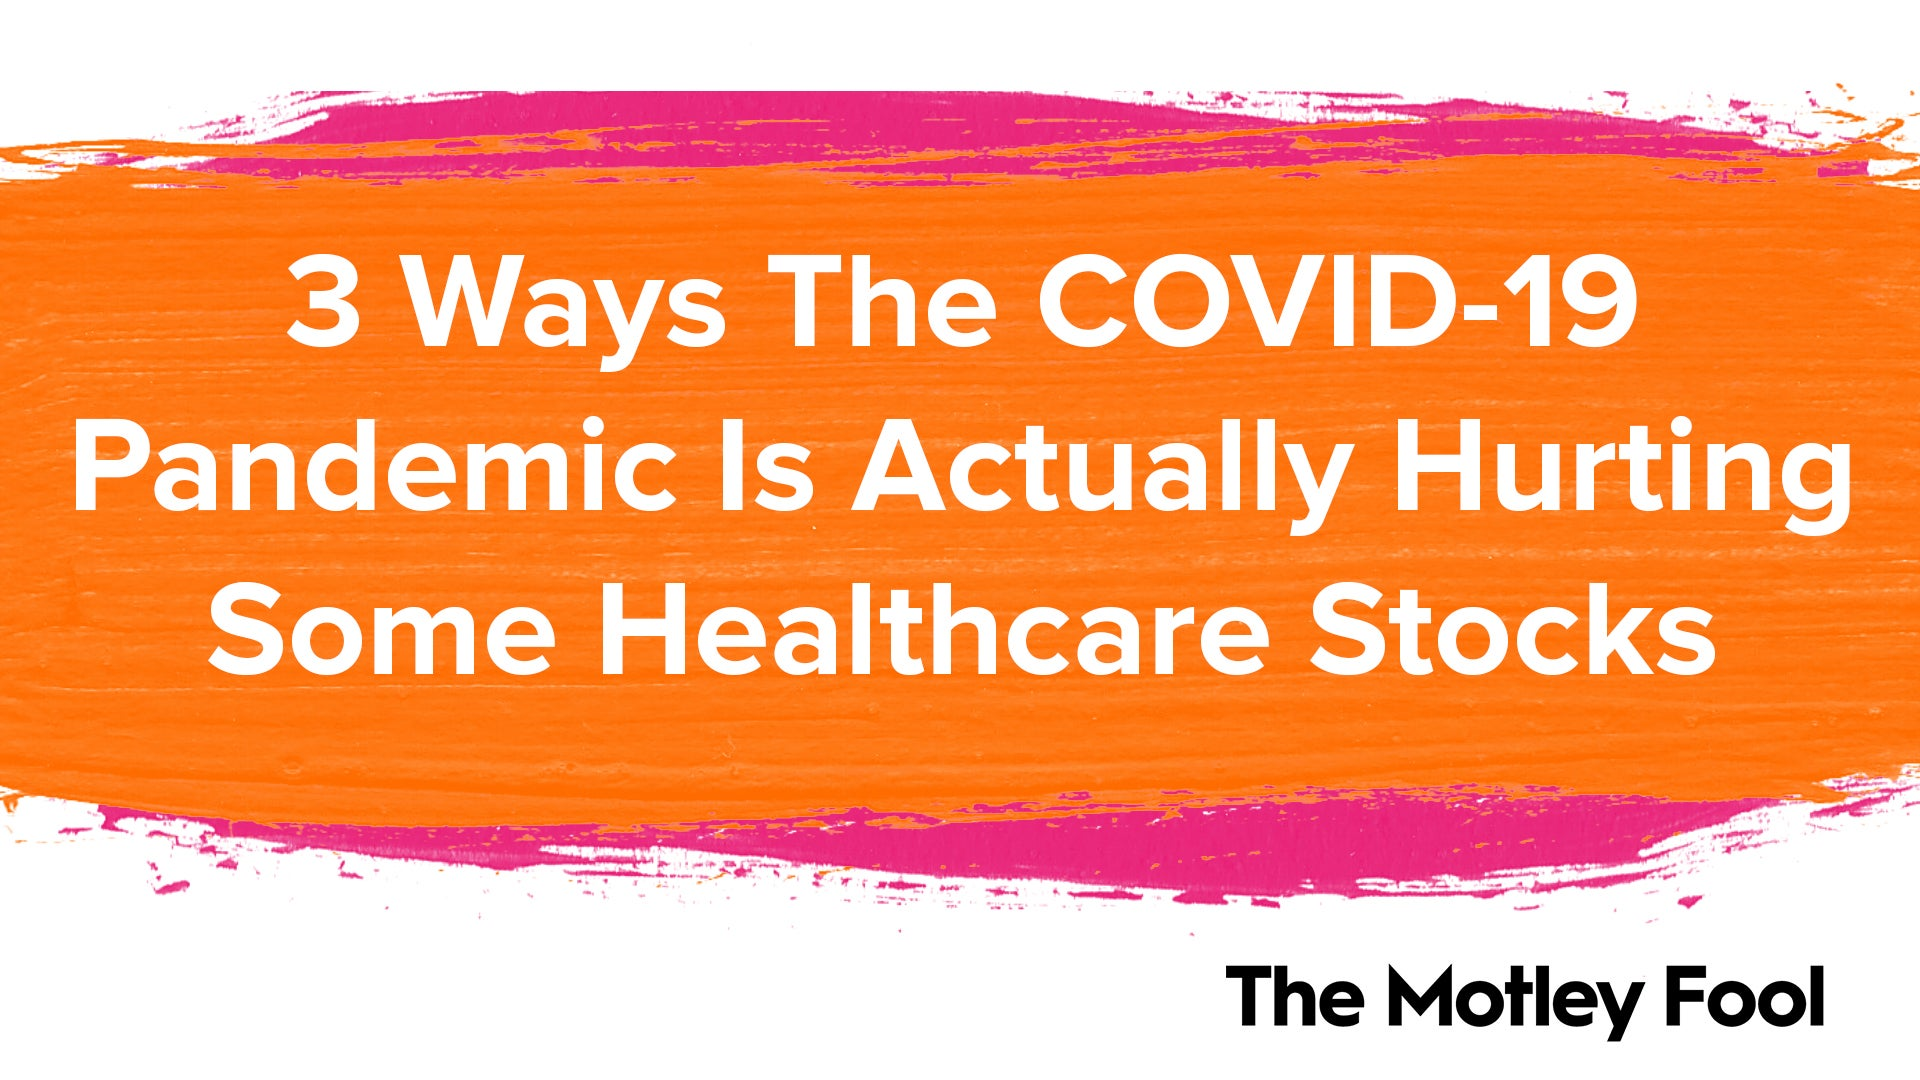 3 Ways The COVID-19 Pandemic Is Actually Hurting Some Healthcare Stocks